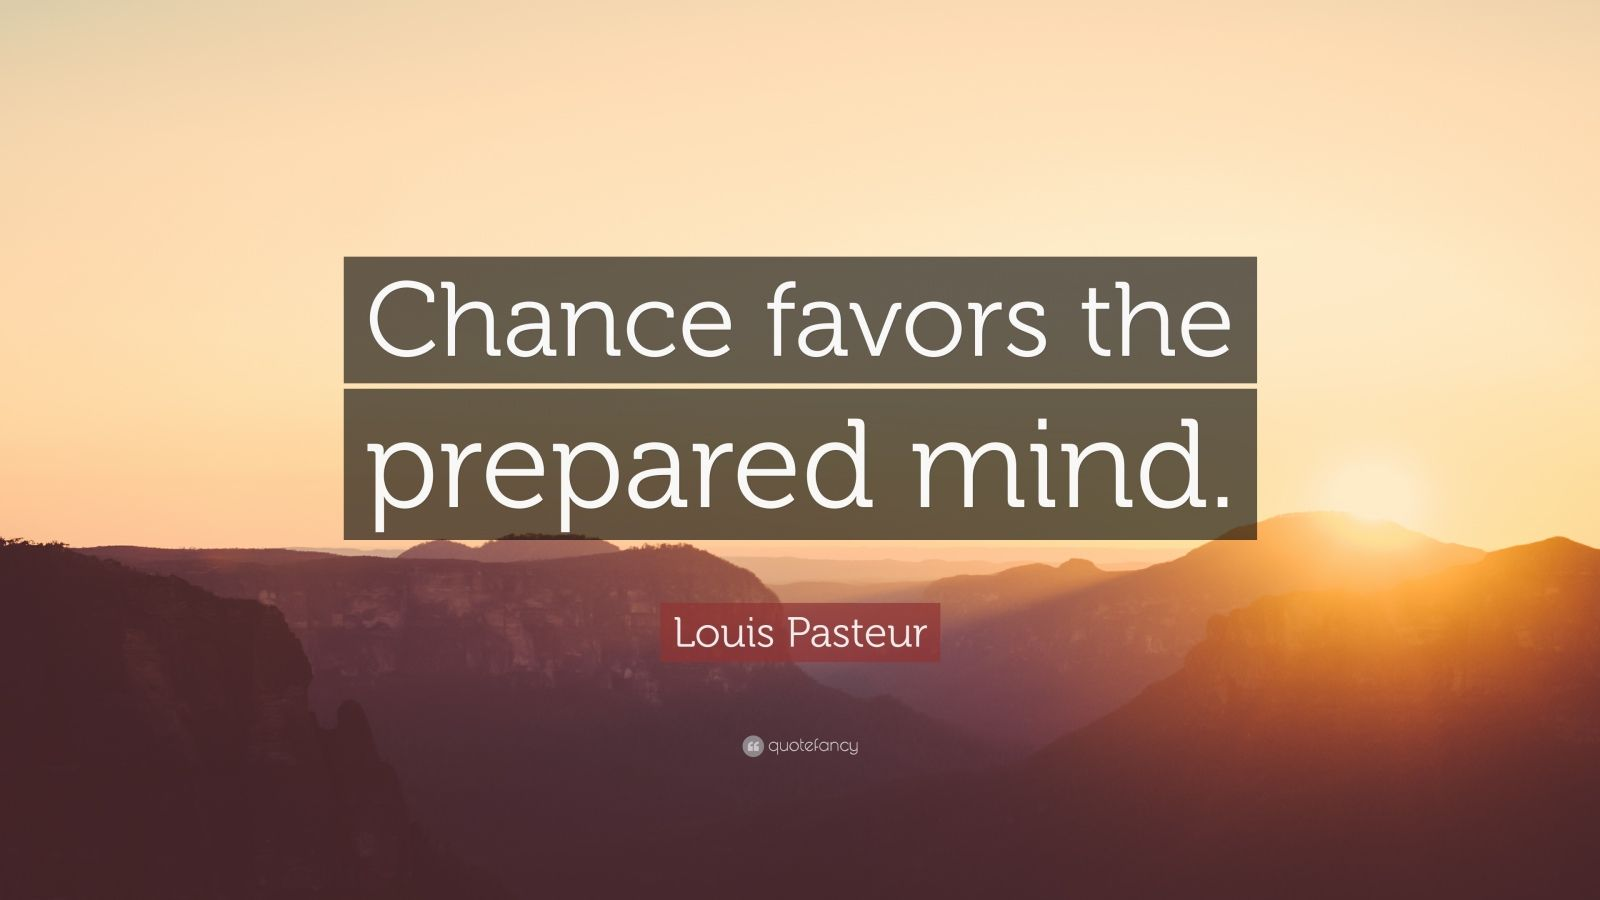 Sports Motivational Quotes Wallpapers Louis Pasteur Quote Chance Favors The Prepared Mind